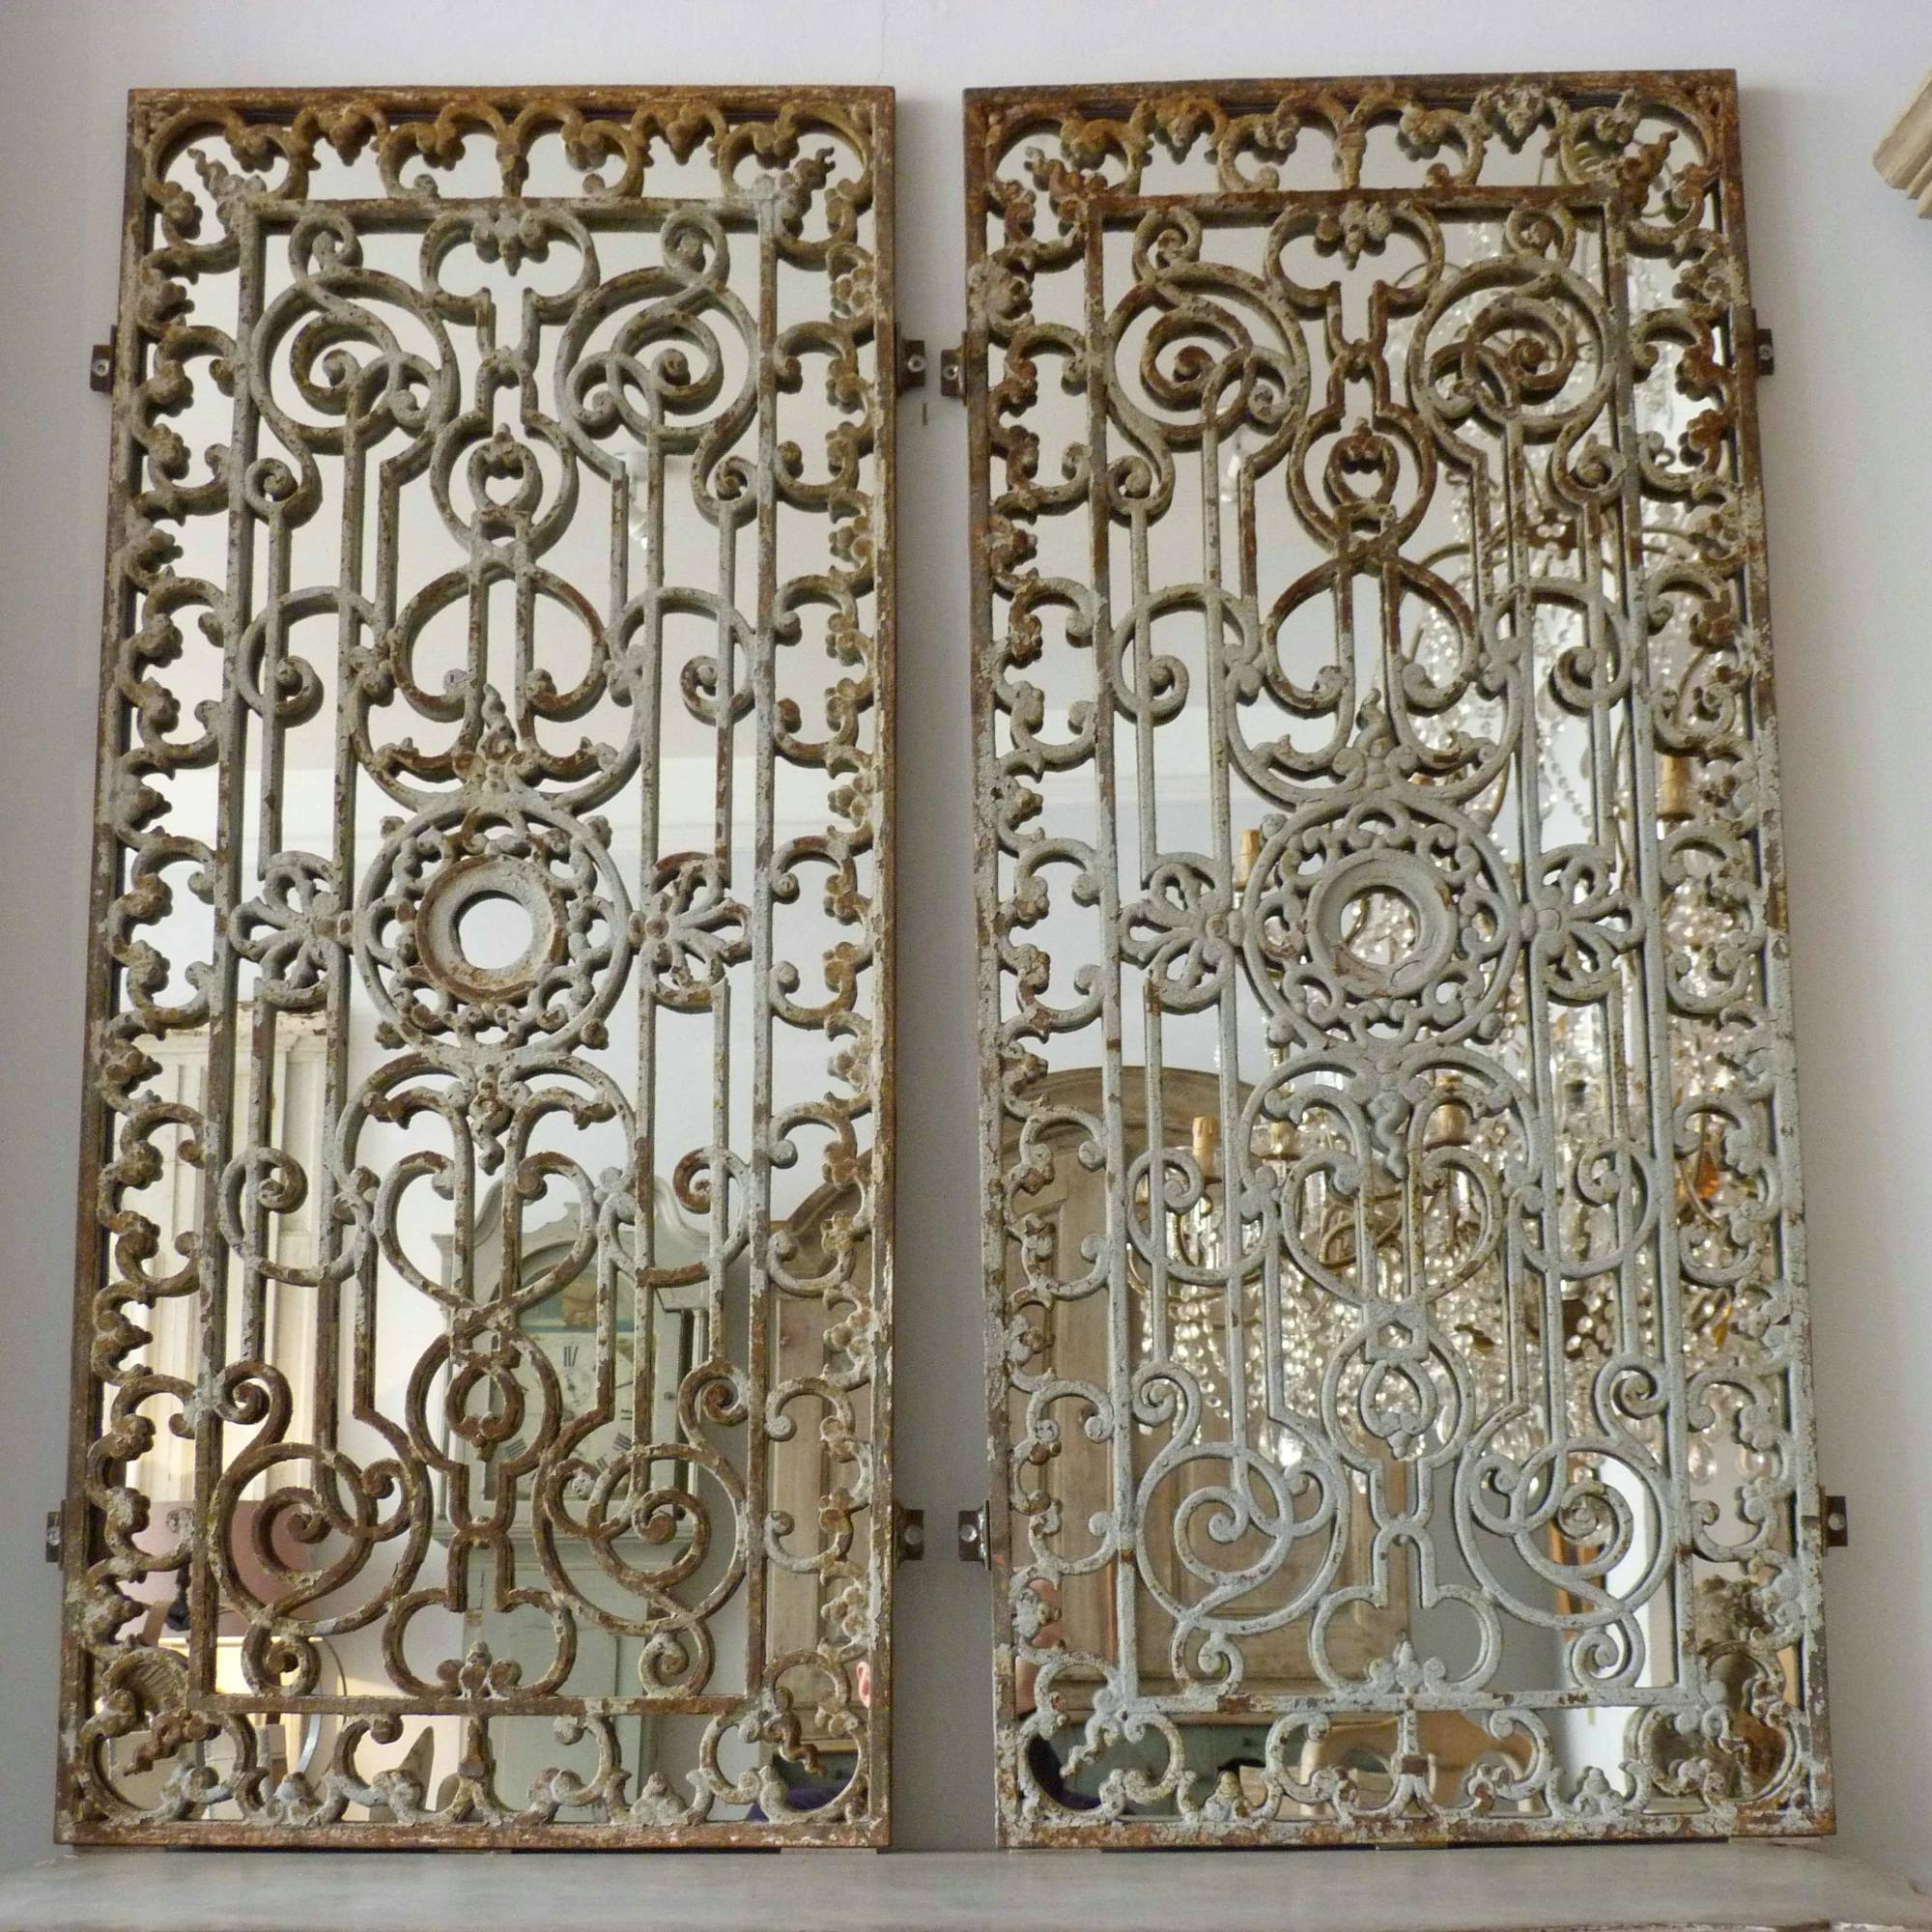 Pair Of French 19Th Century Decorative Iron Grill Mirrors In From Pertaining To Large French Mirrors (View 15 of 15)